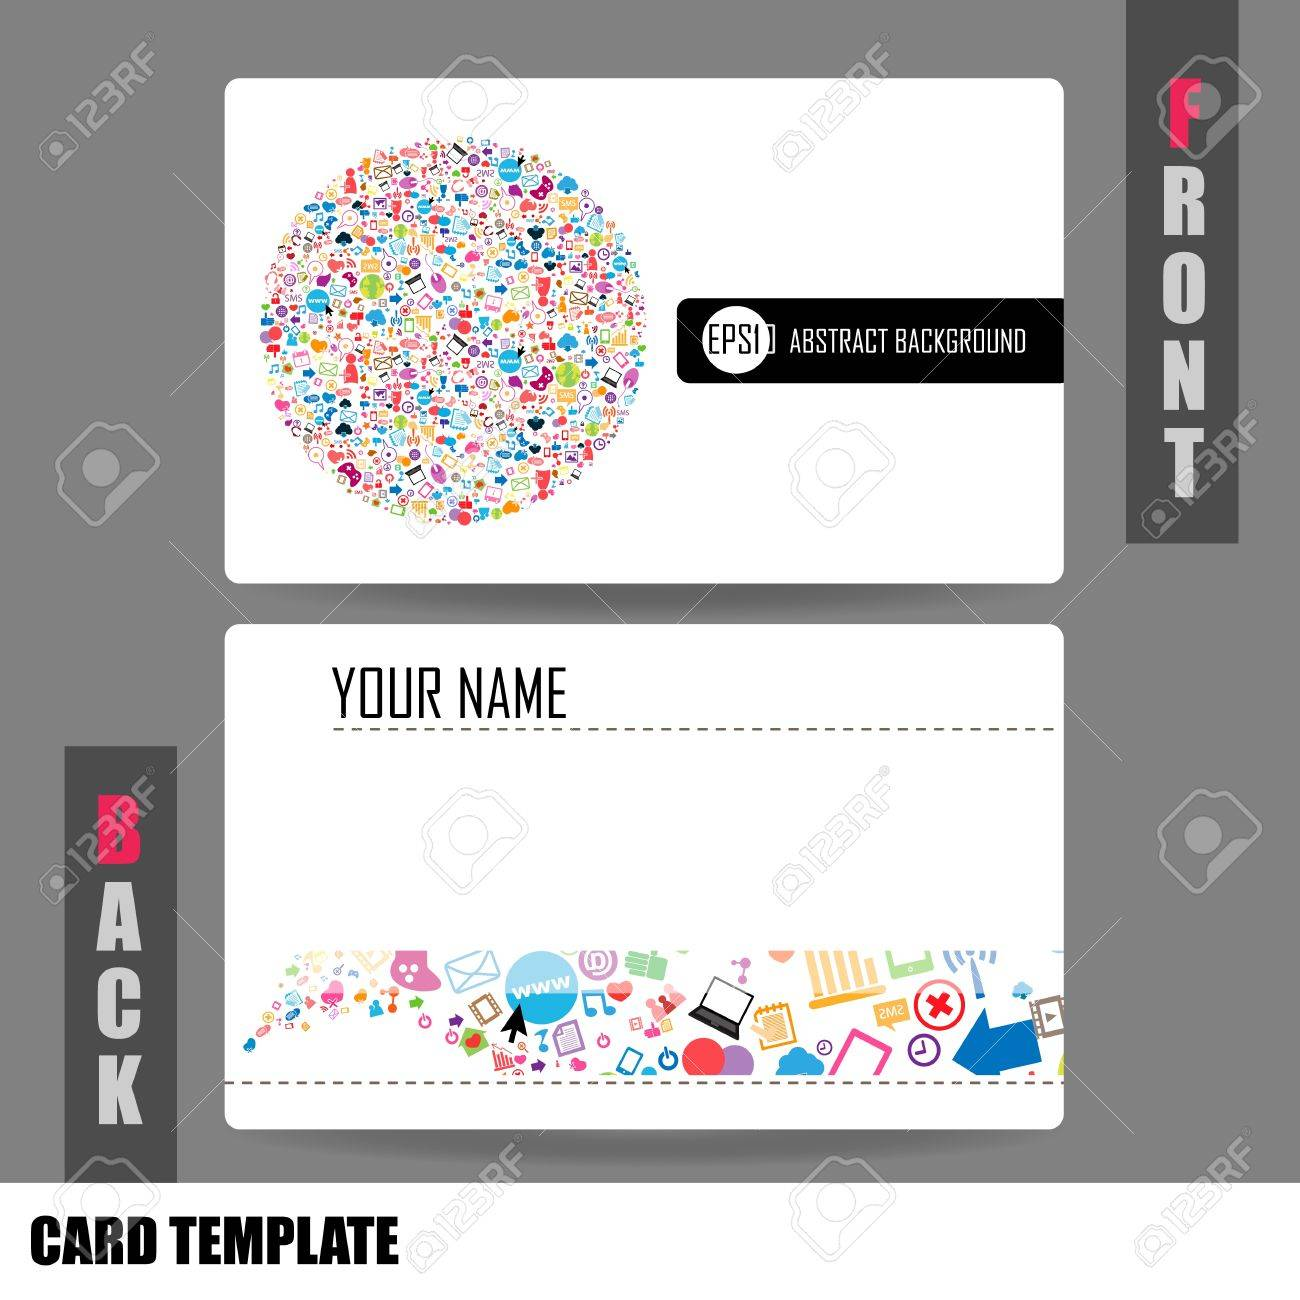 modern social network business card set royalty cliparts modern social network business card set stock vector 20946579